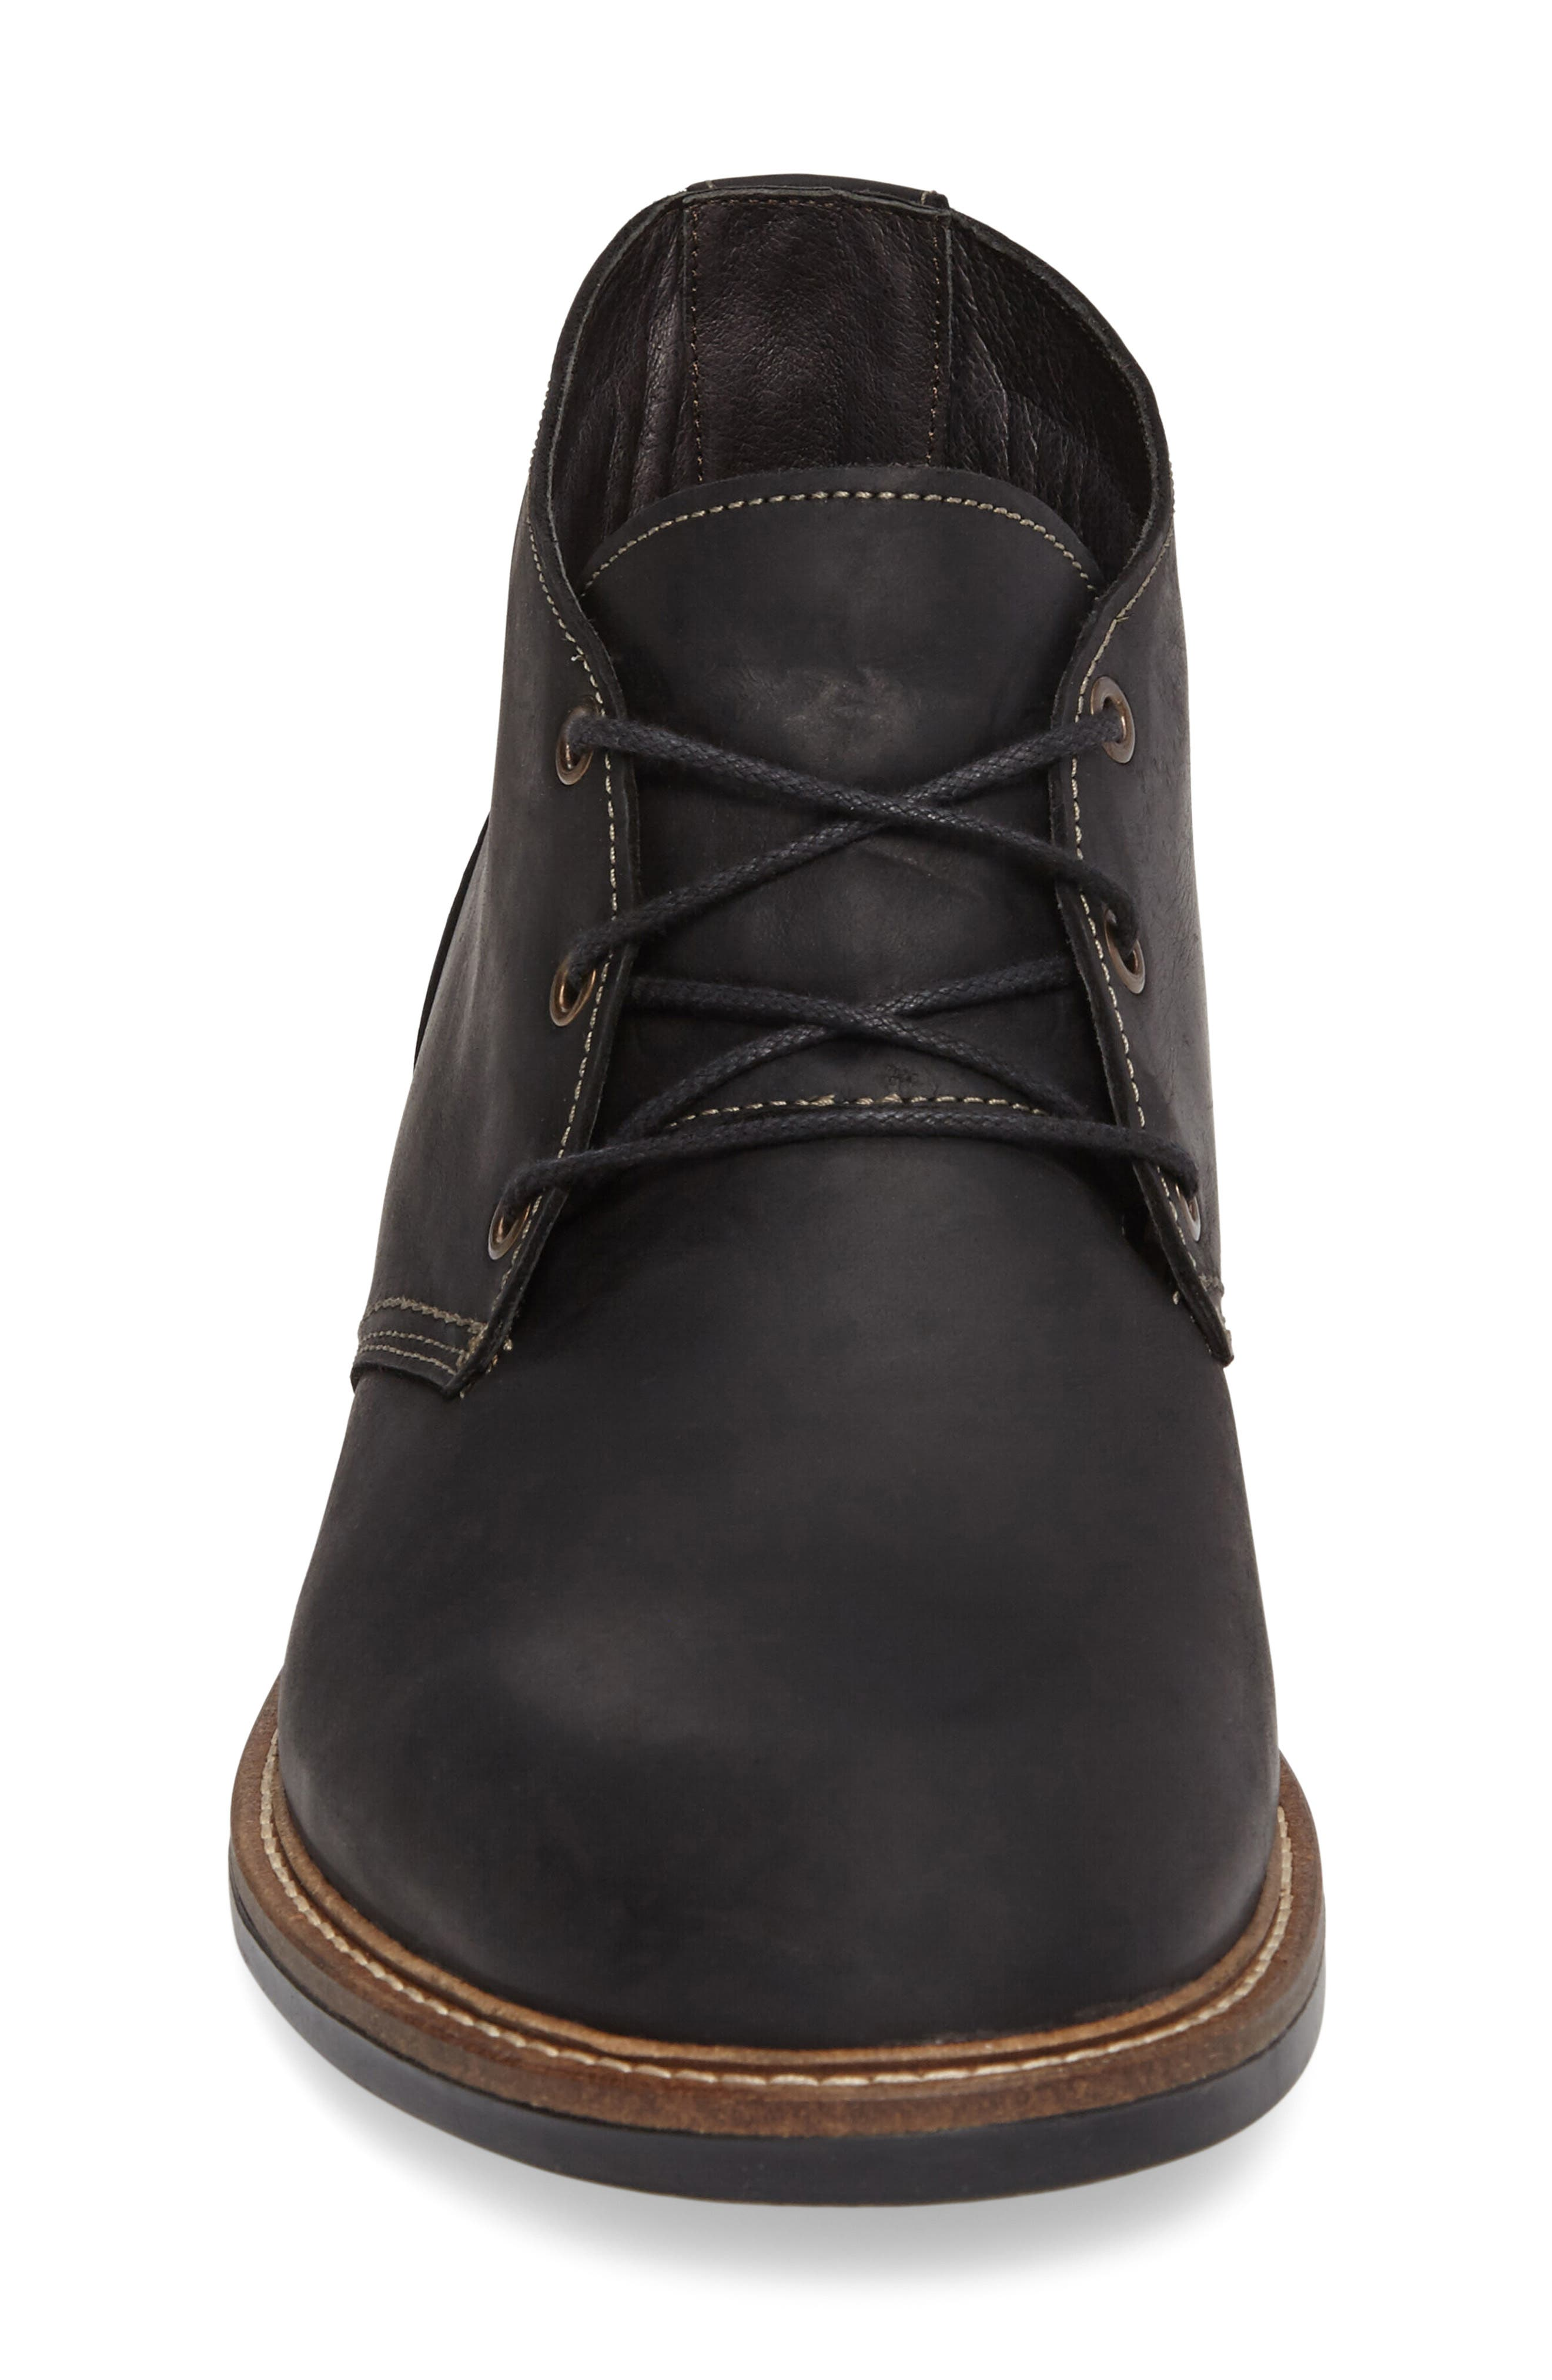 Pilot Chukka Boot,                             Alternate thumbnail 3, color,                             COAL NUBUCK LEATHER